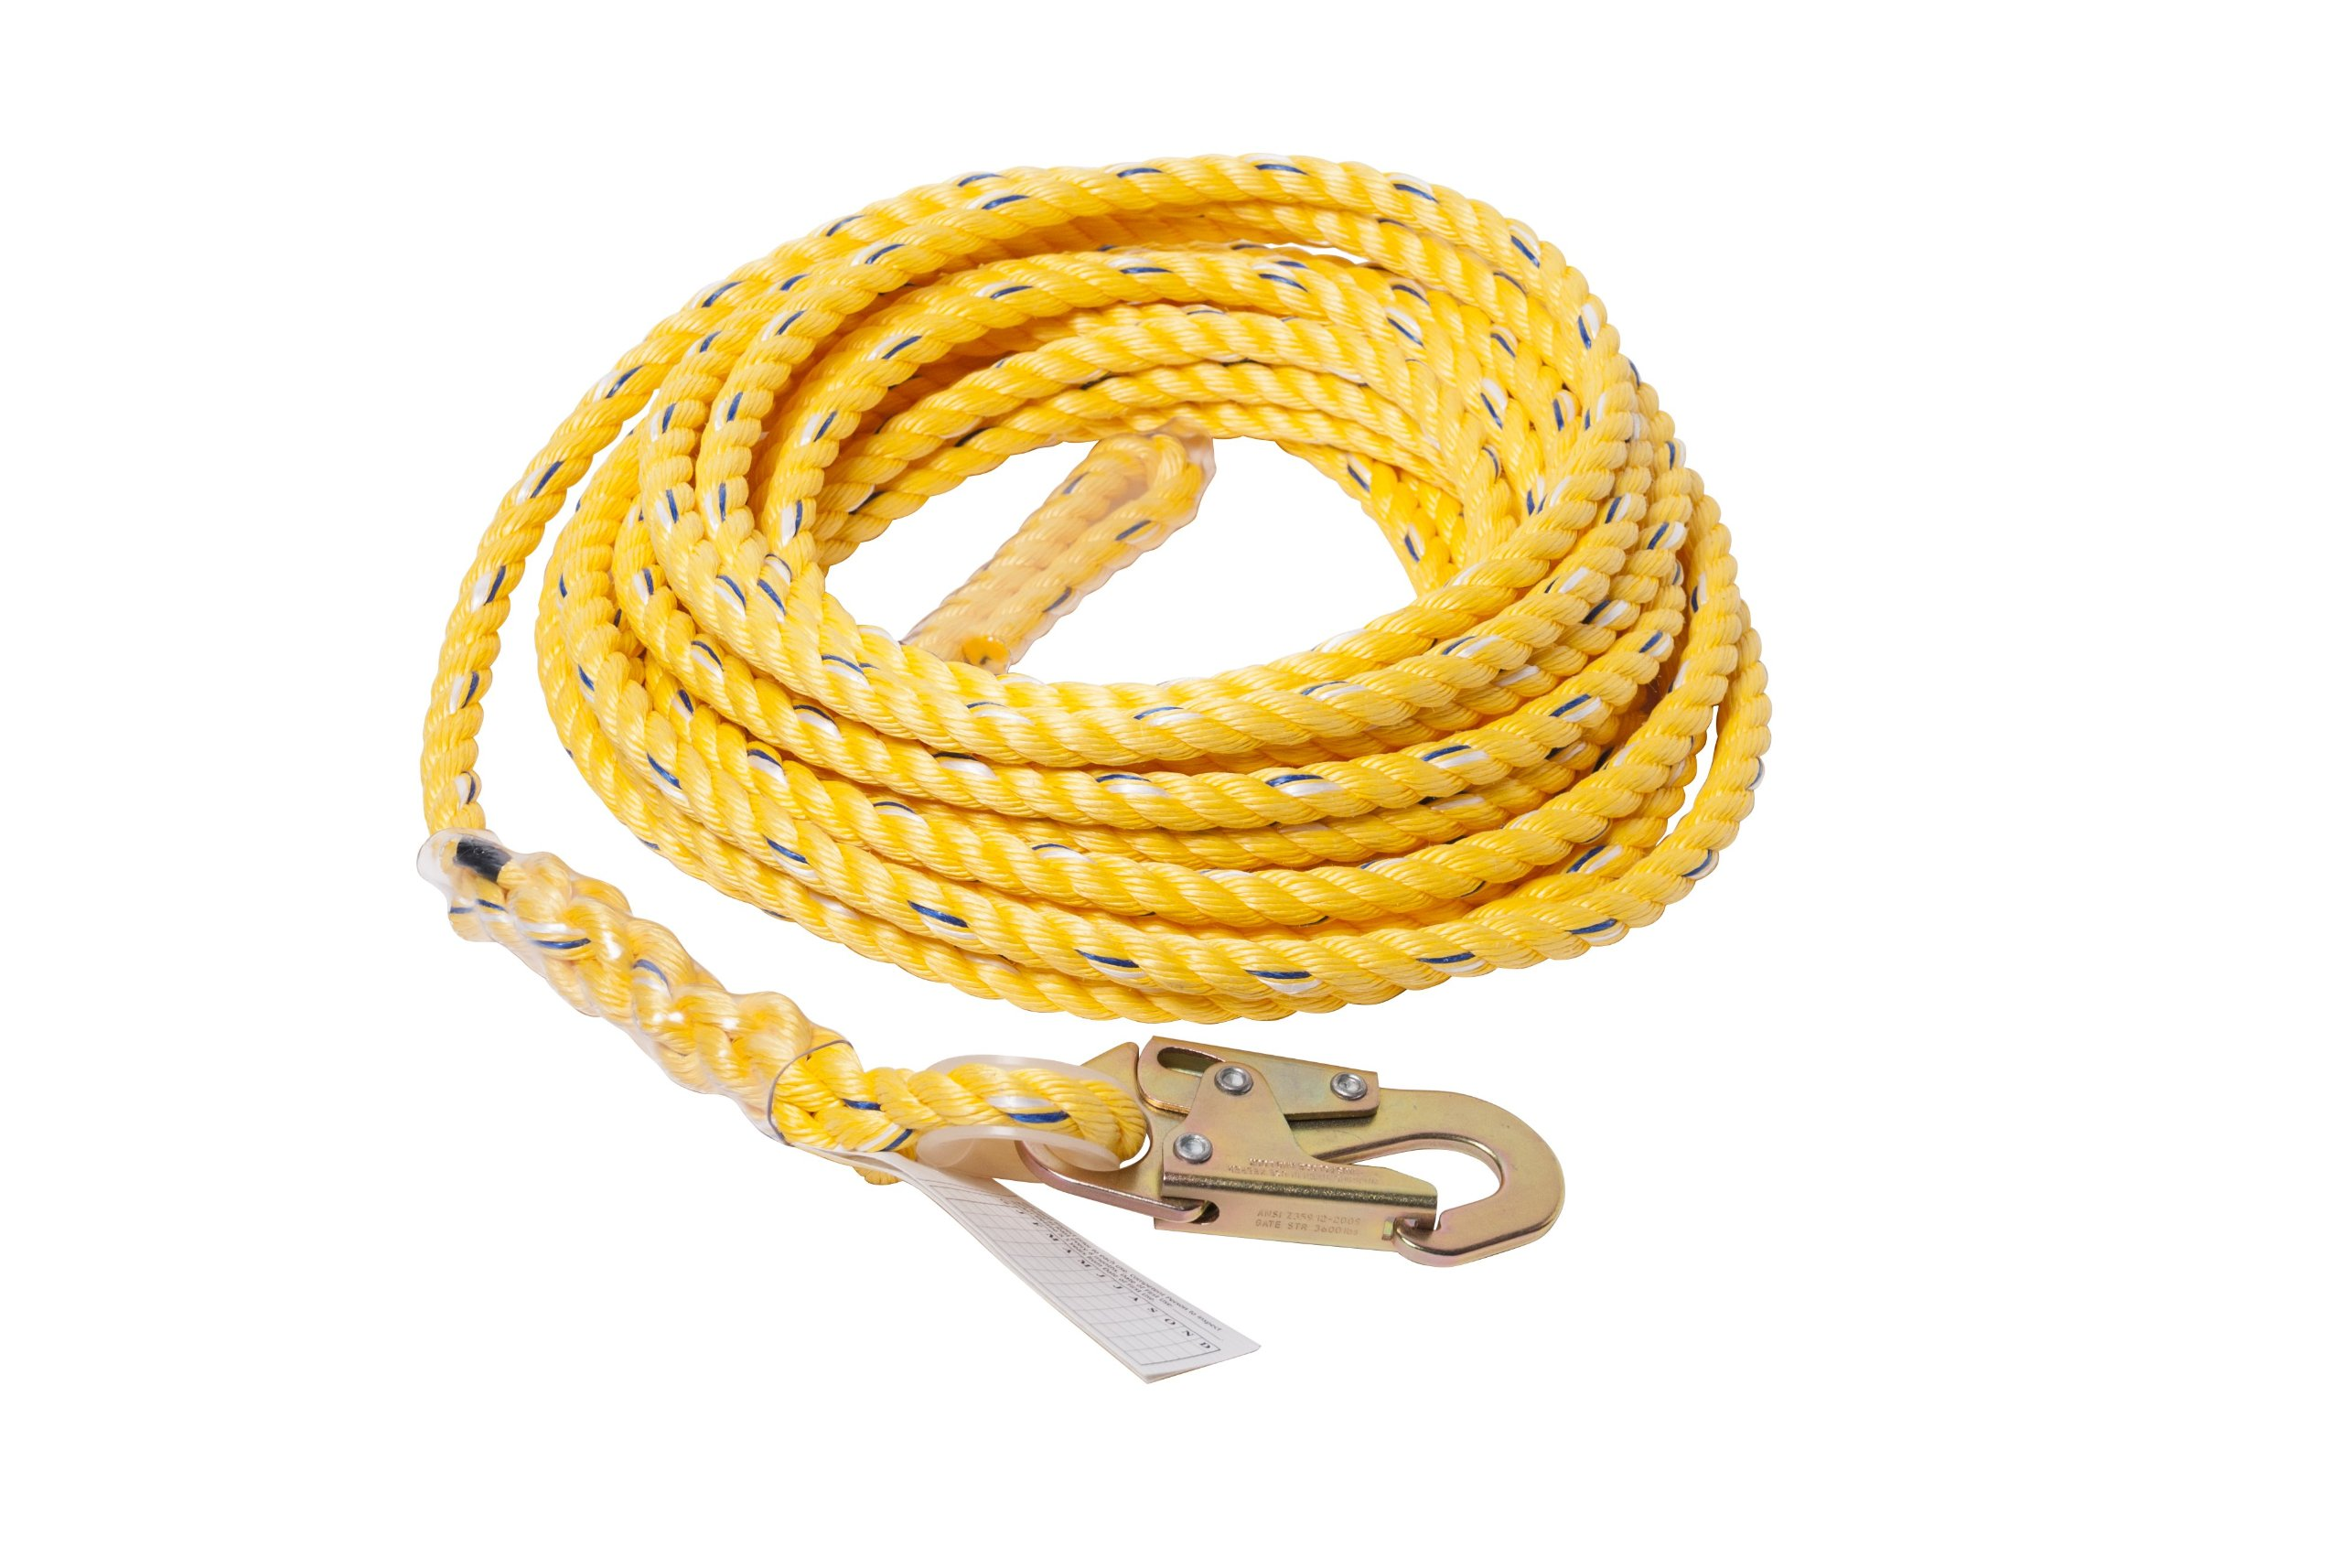 Guardian Fall Protection 01365 VL58-150 Standard 5/8 Inch Thick Rope with Snaphook End, 150-Foot